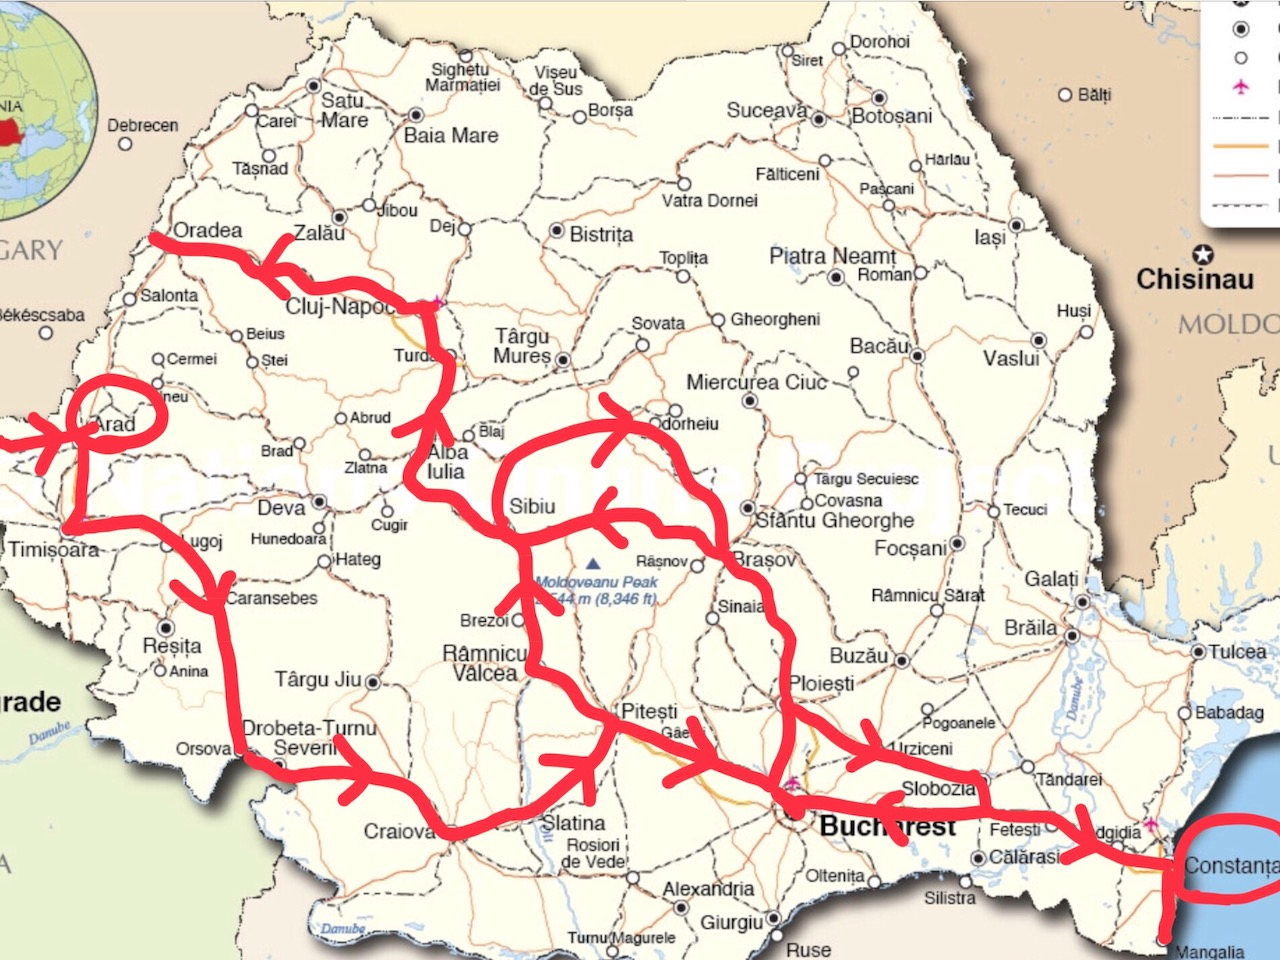 Map of Mark's journey across Romania.